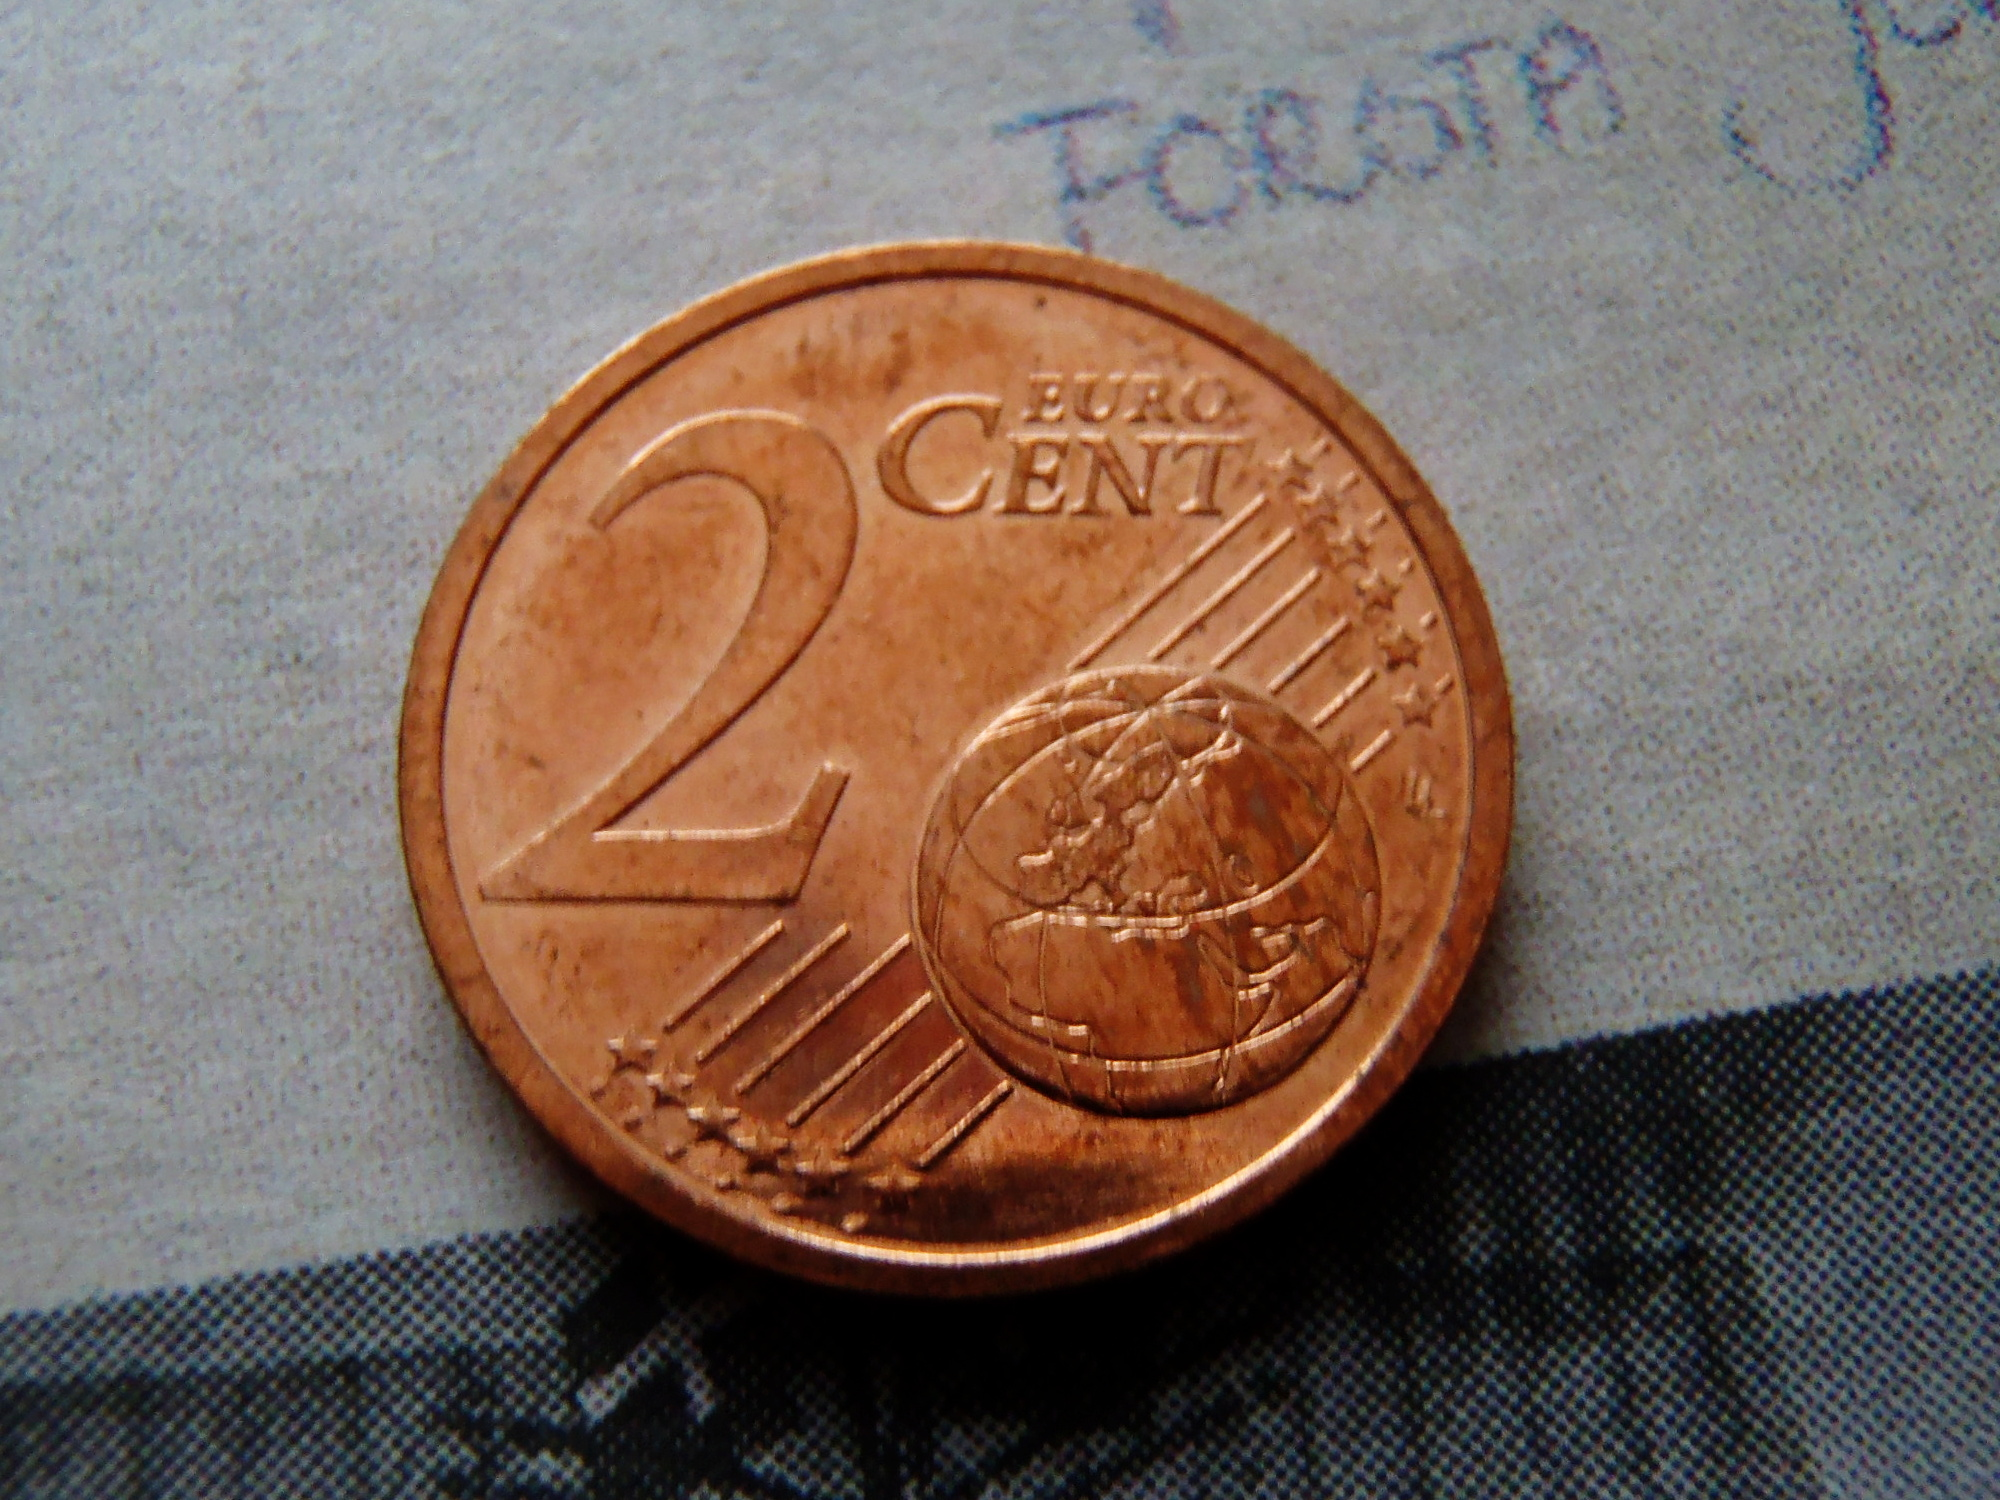 2 cents worth Podcast